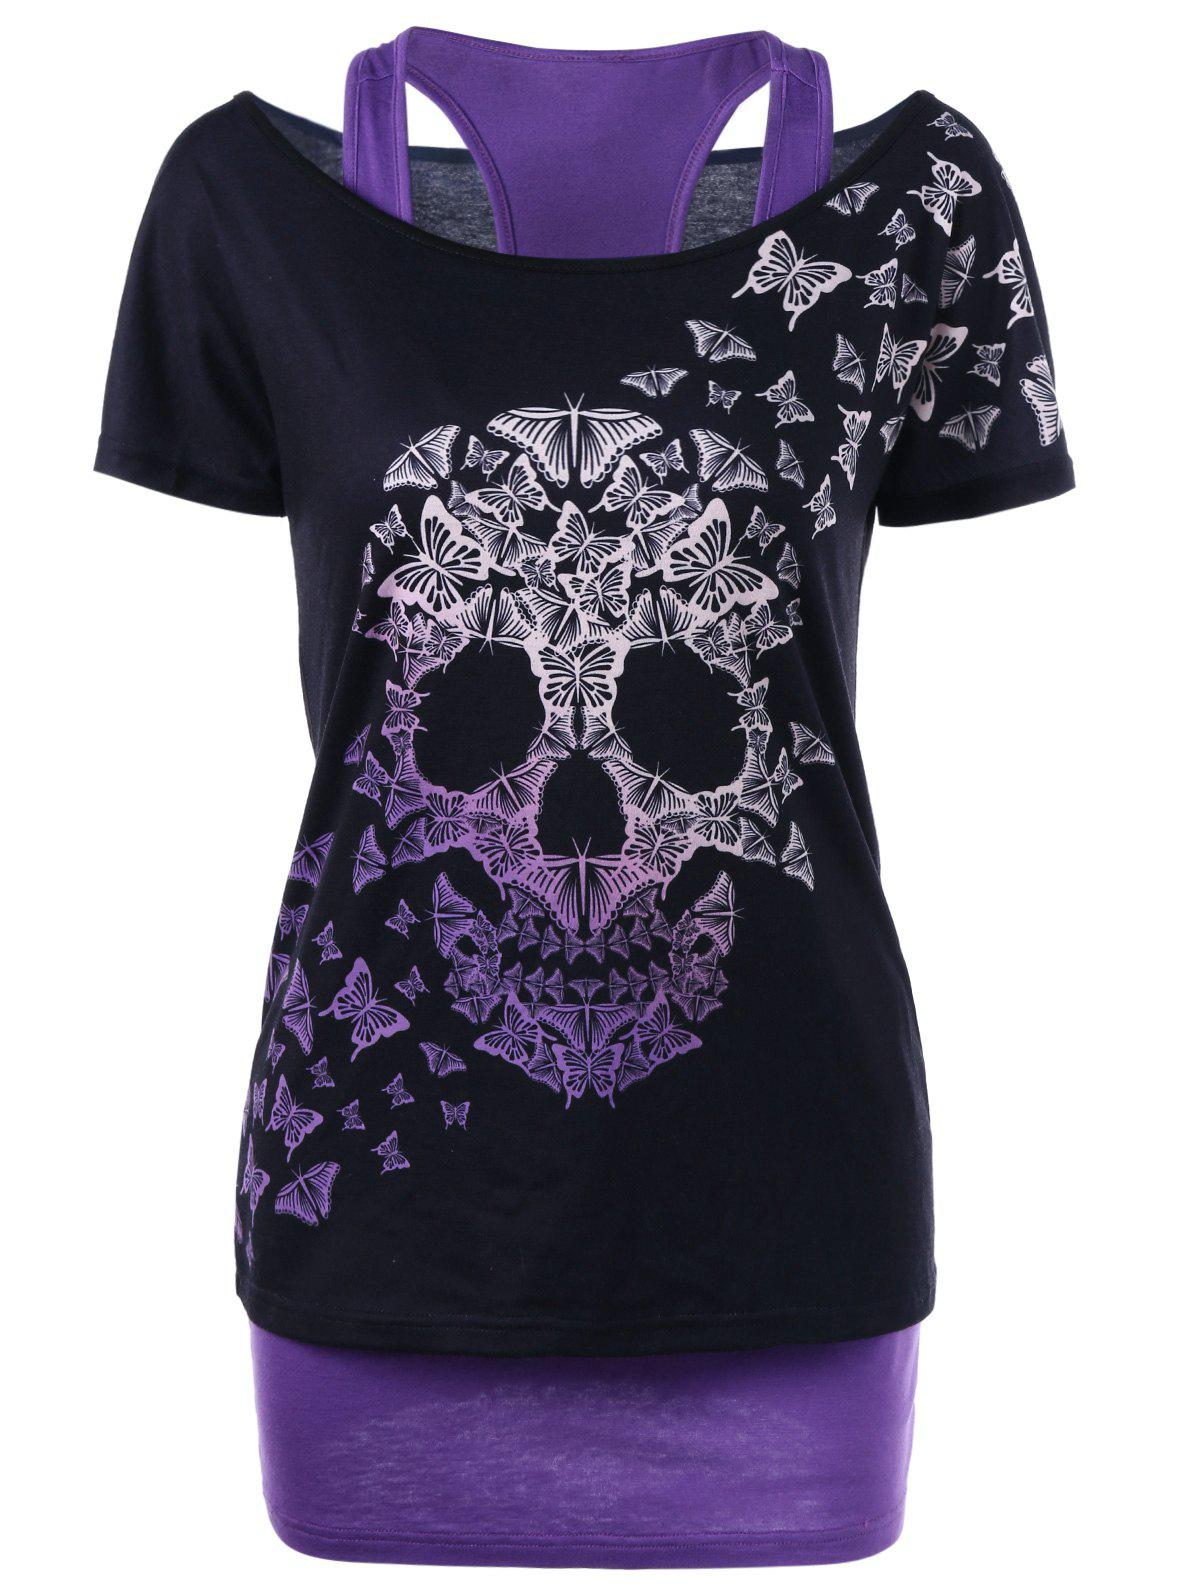 2018 Skull Butterfly T Shirt With Tank Top In Black Purple